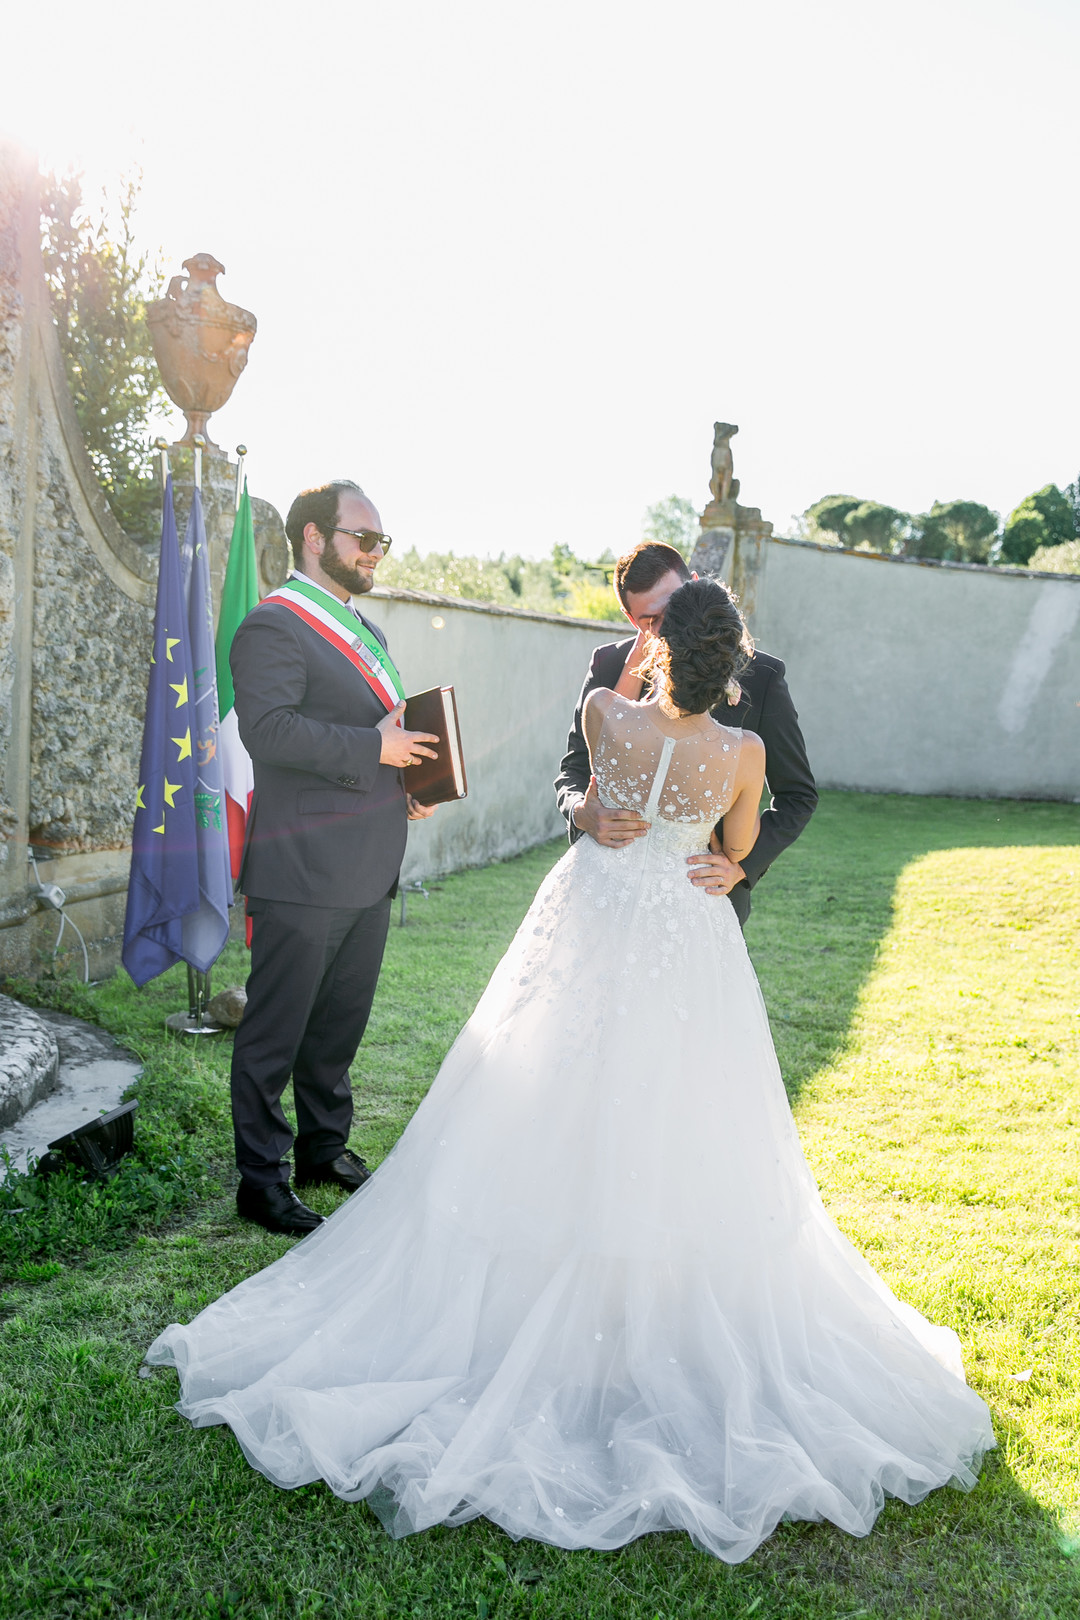 Italian Wedding Ceremony - Officiant